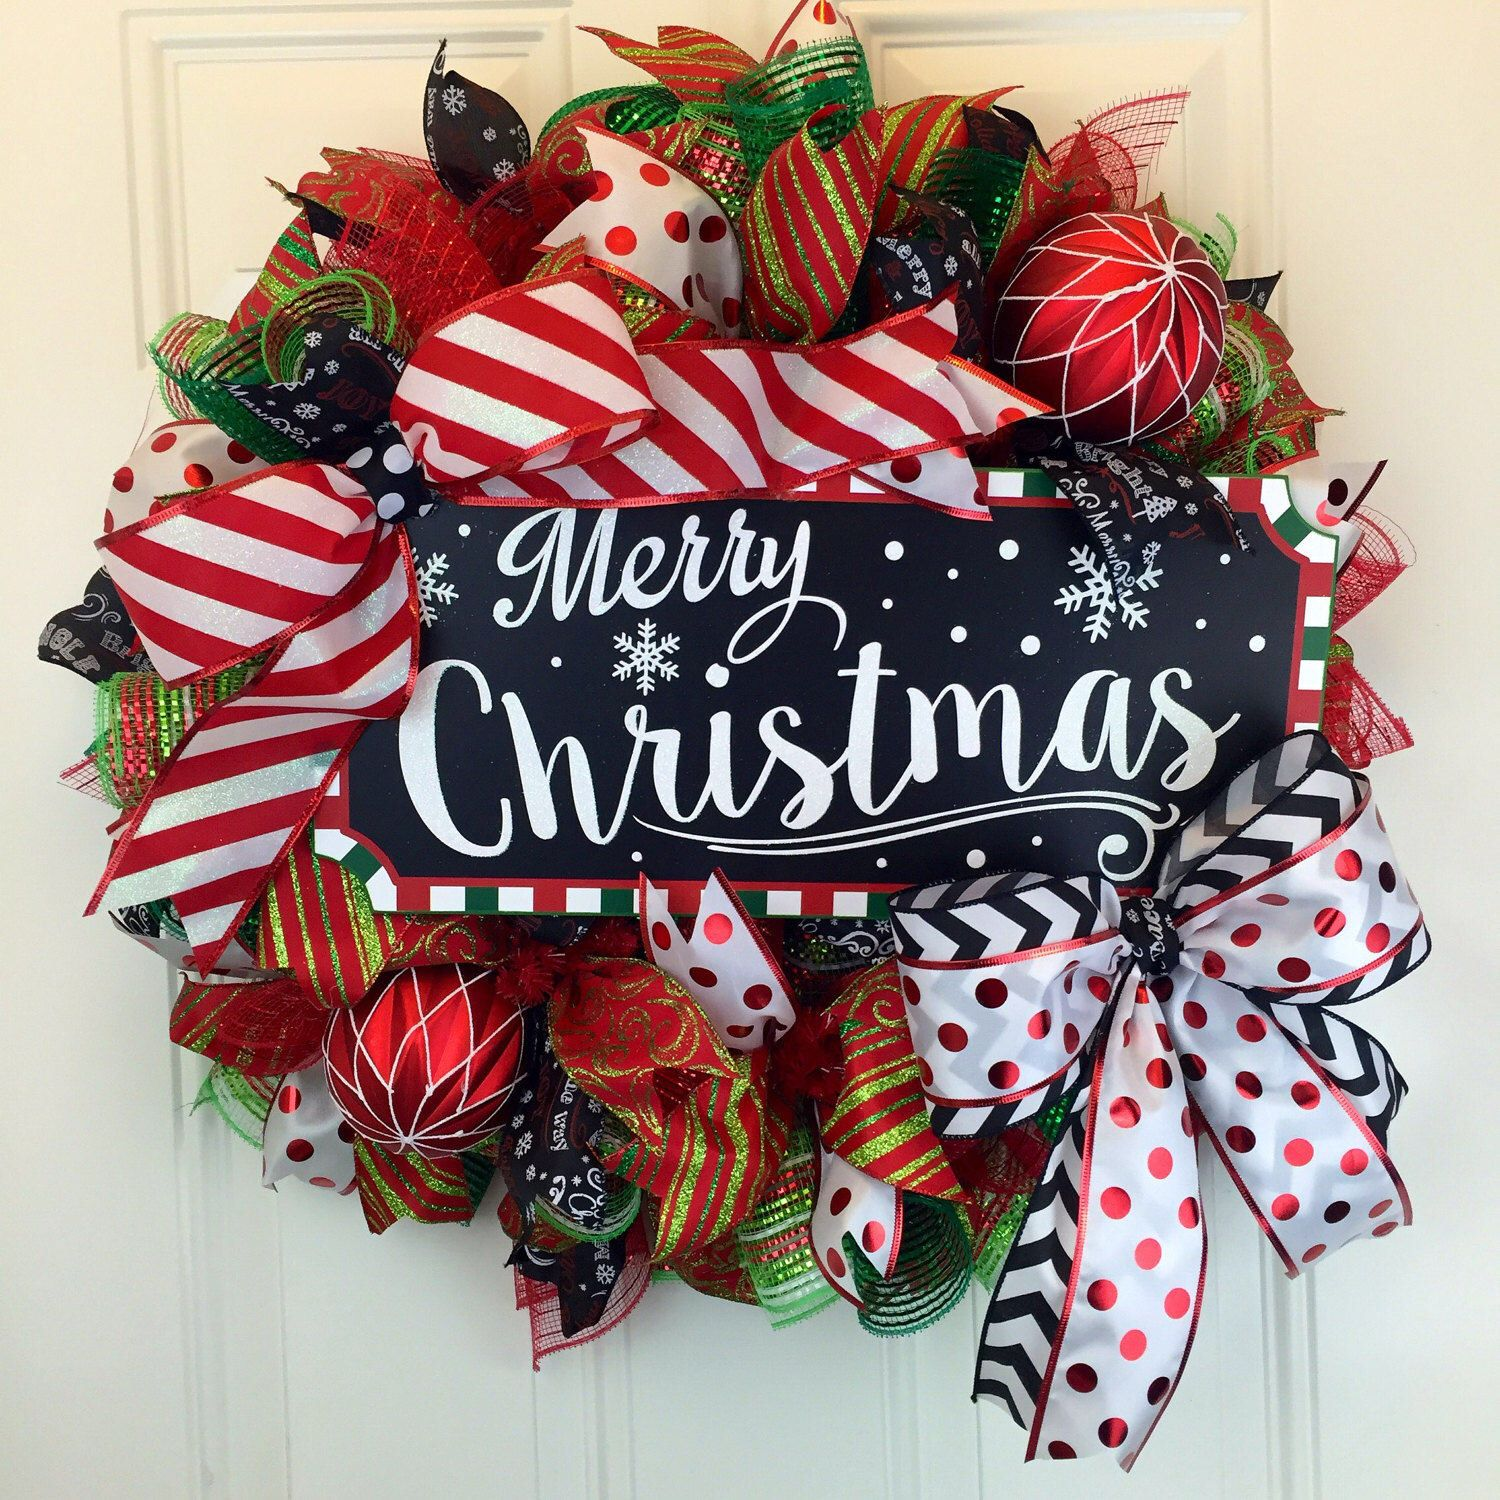 Deco Mesh Christmas Wreath Red white and black Christams wreath